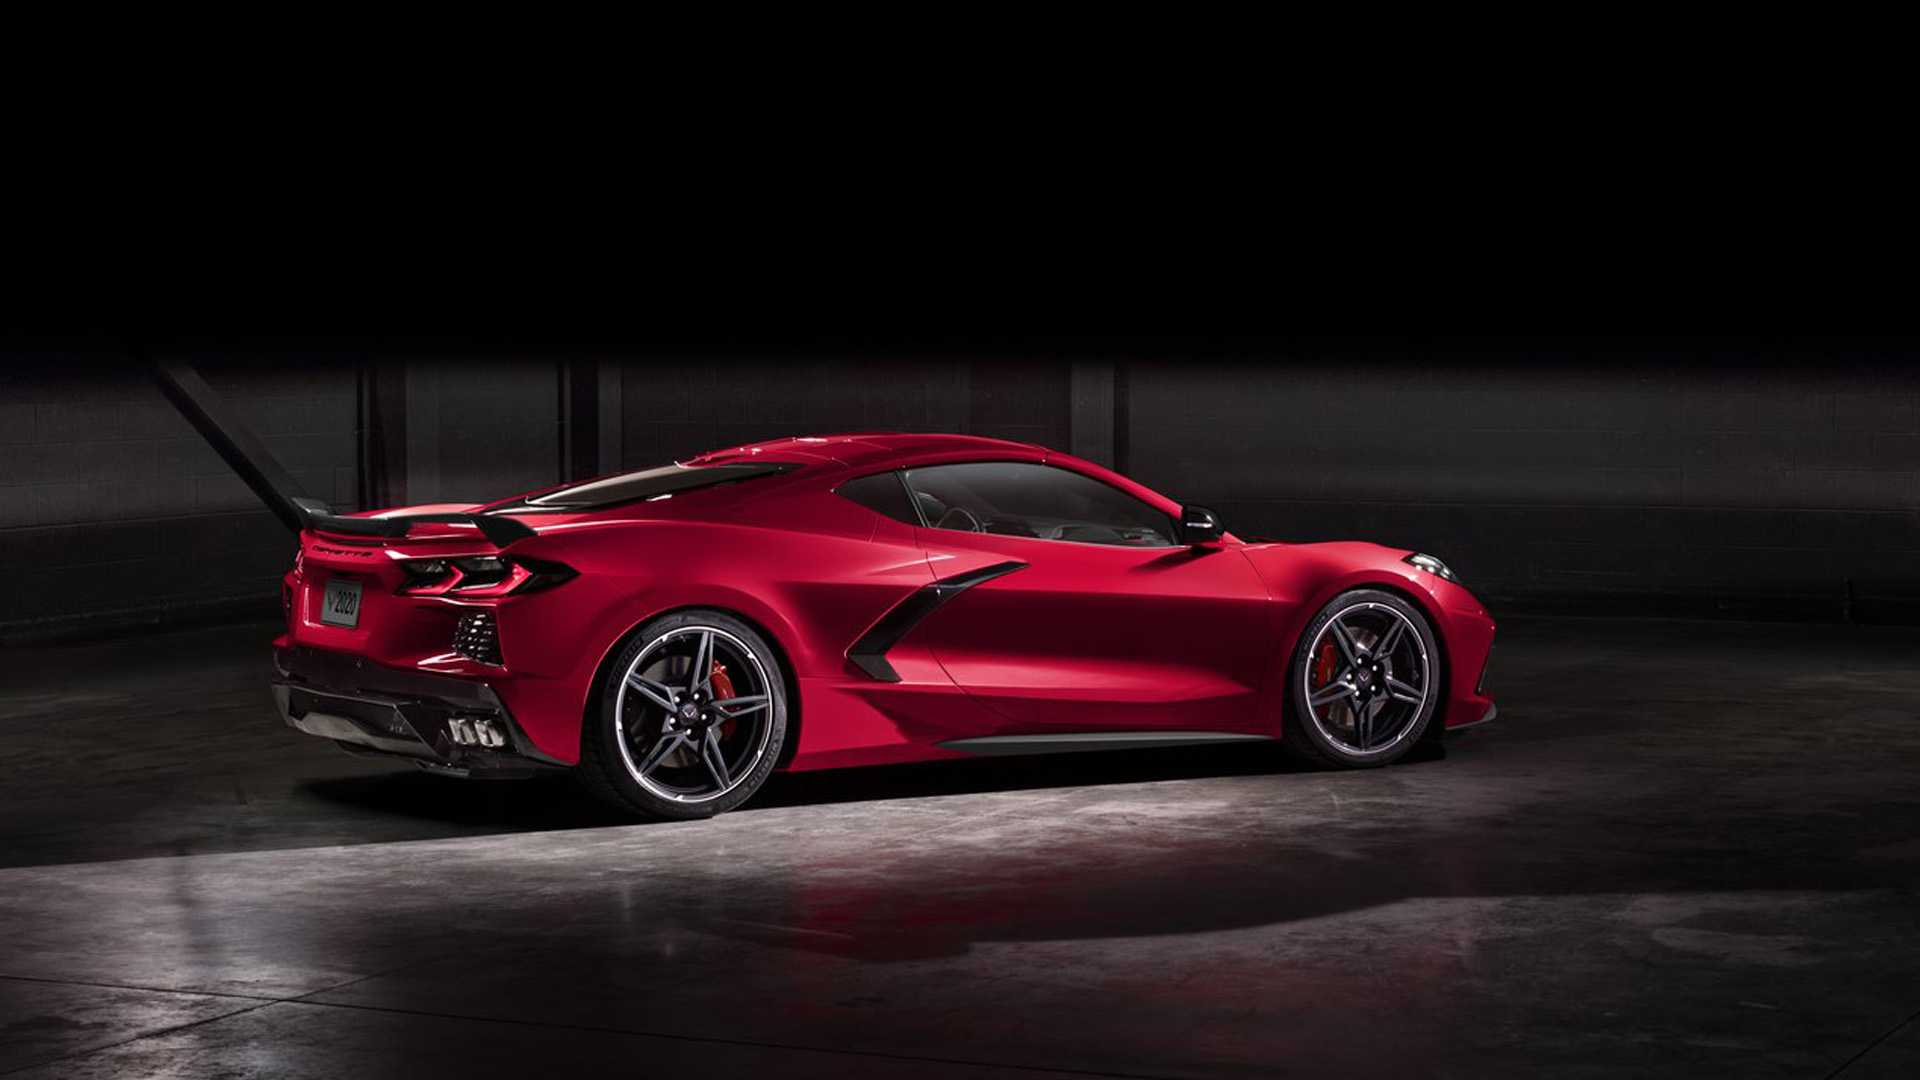 2020 Chevrolet Corvette C8 Stringray 3